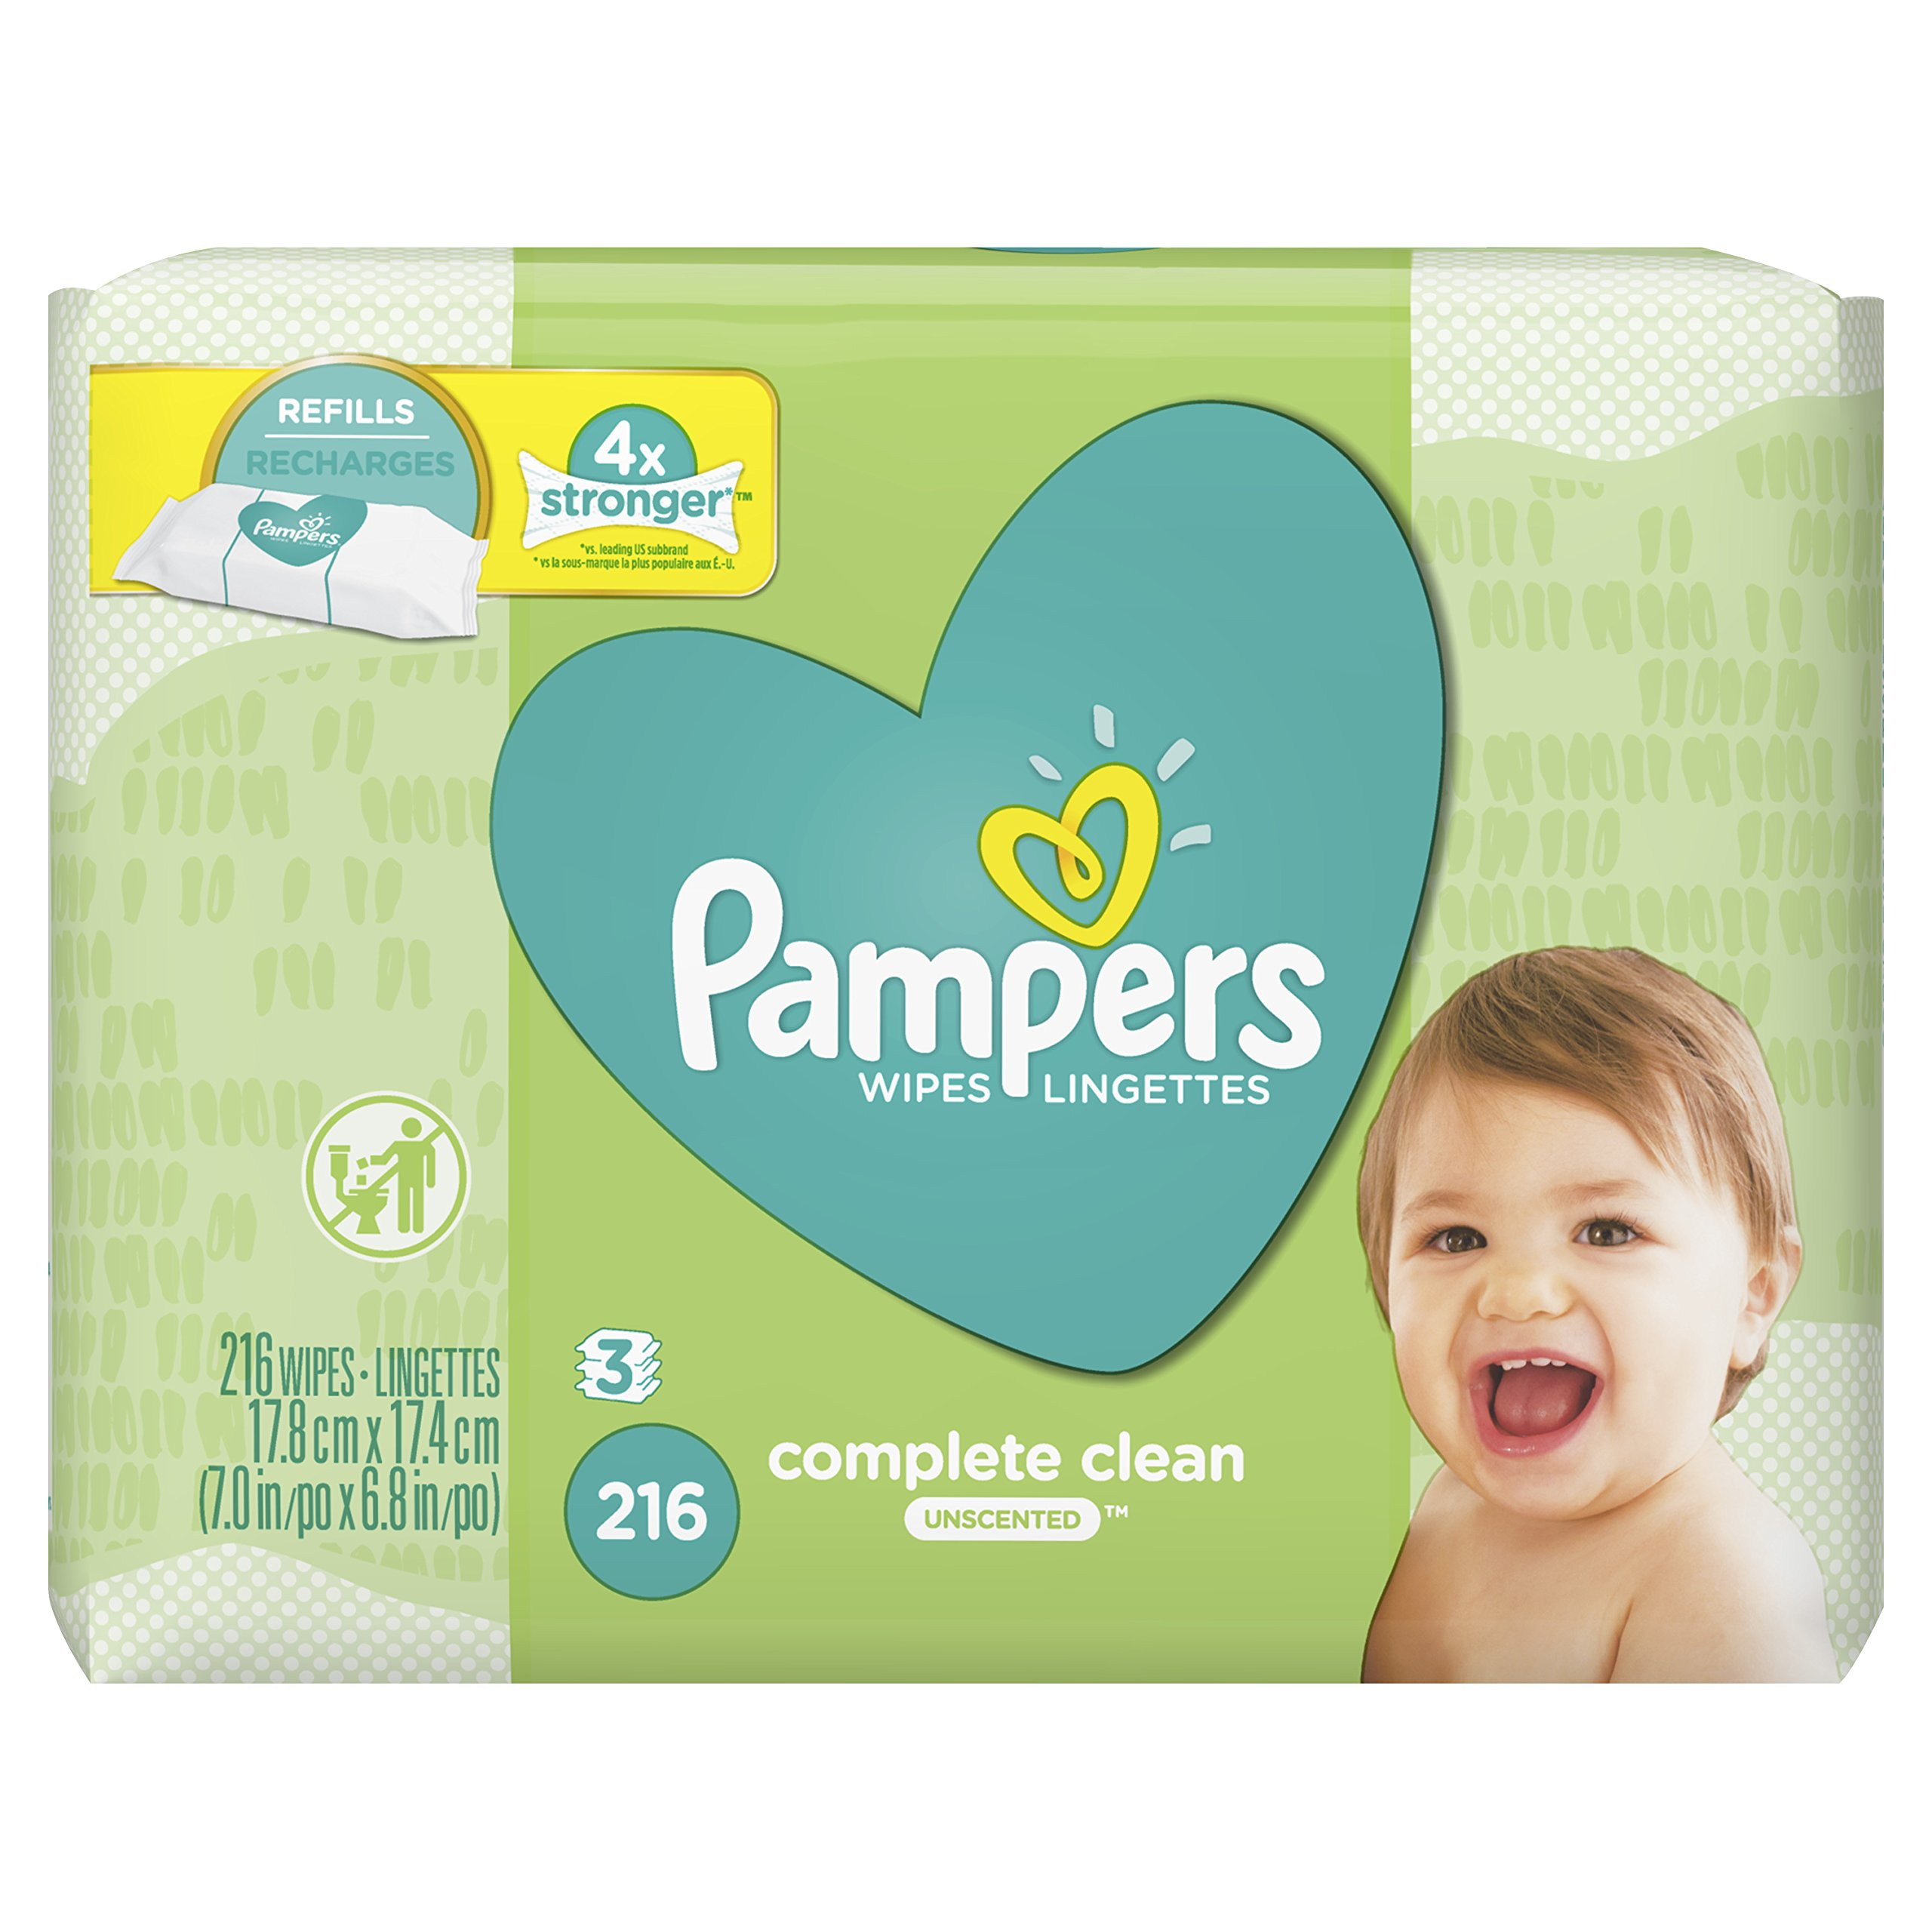 Pampers Complete Clean Unscented 3X Refills Baby Wipes, 216 ct